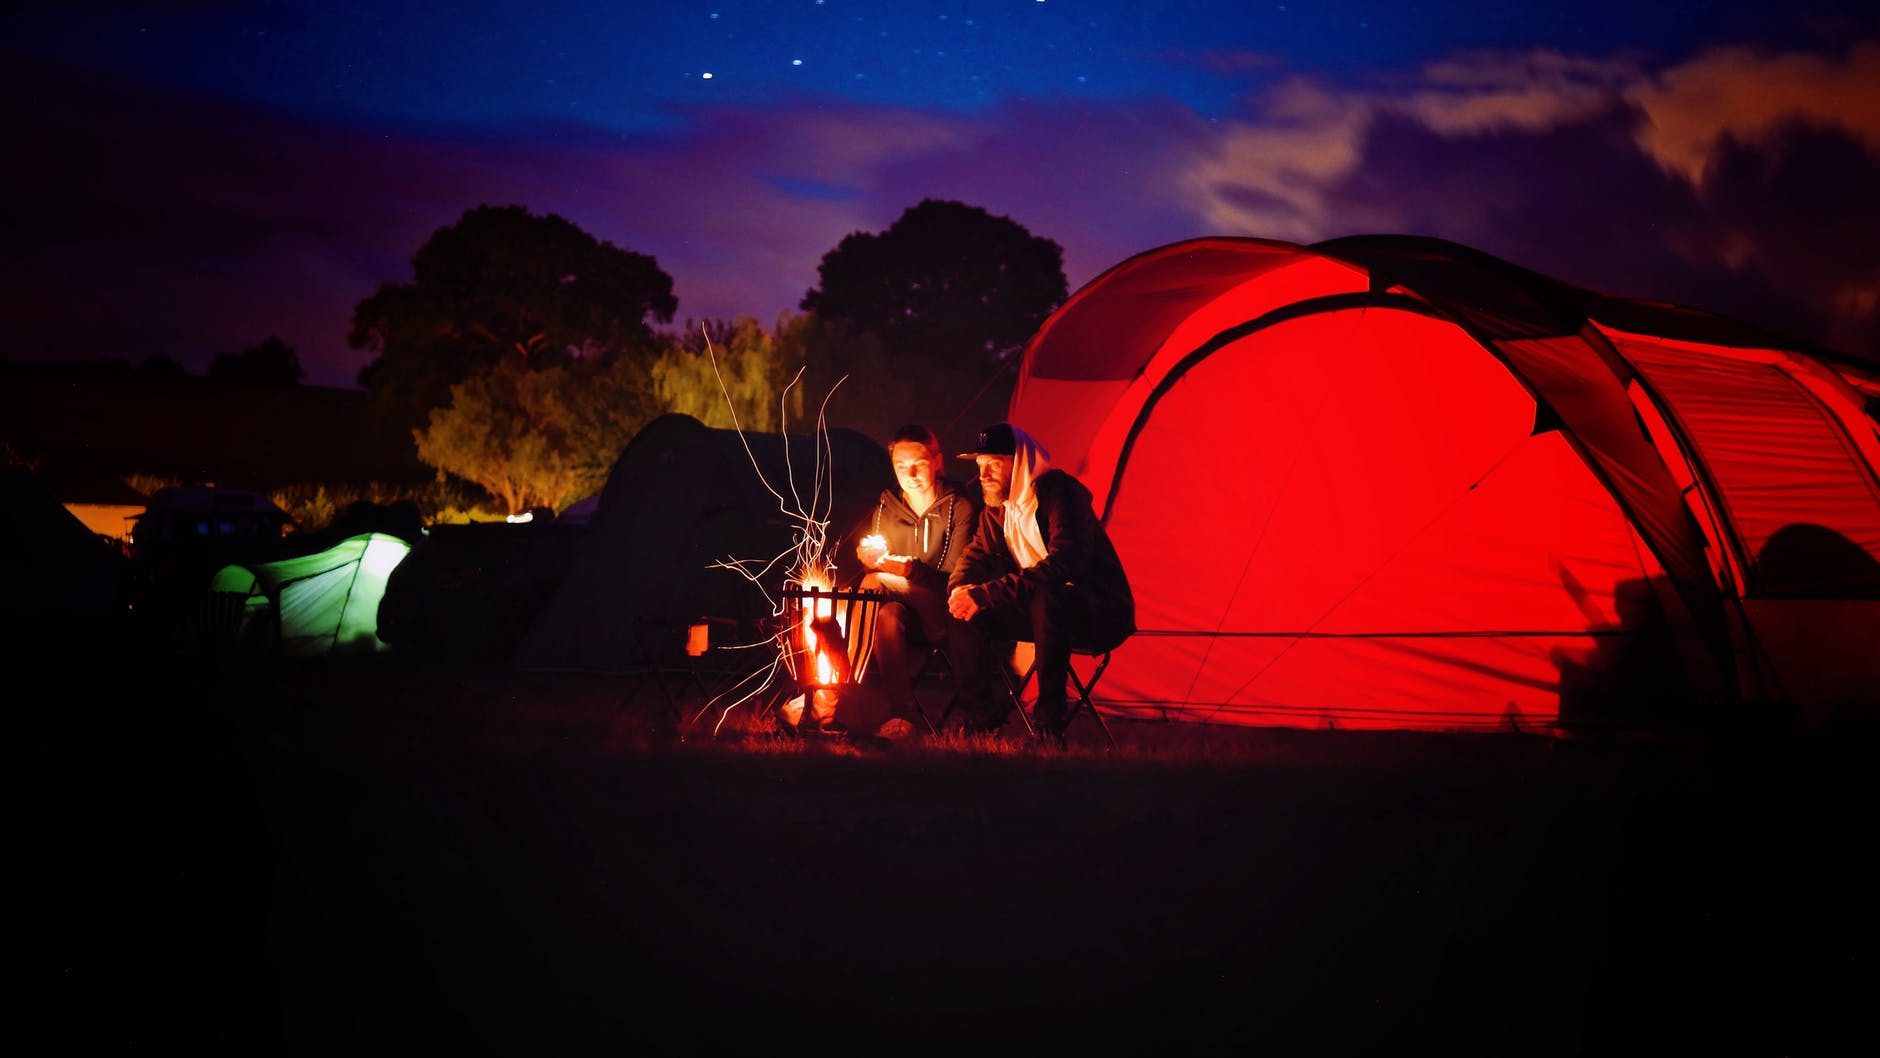 How to Have a Fun Backyard Camping Experience with Your Family